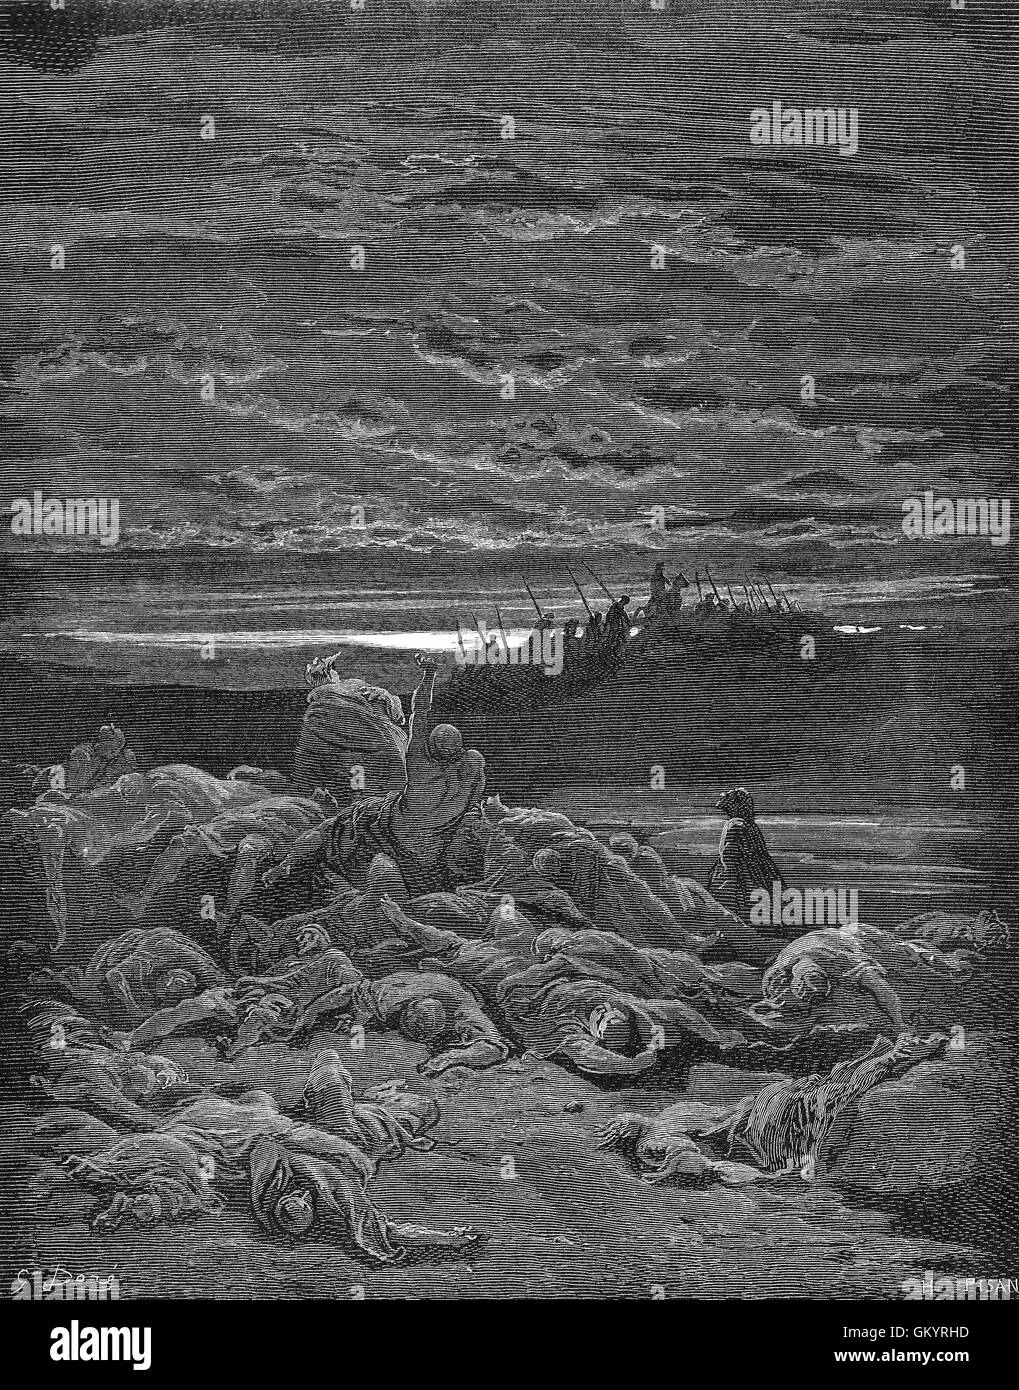 Engraving of The Death of The Sons of Gideon by Gustave Doré - Stock Image